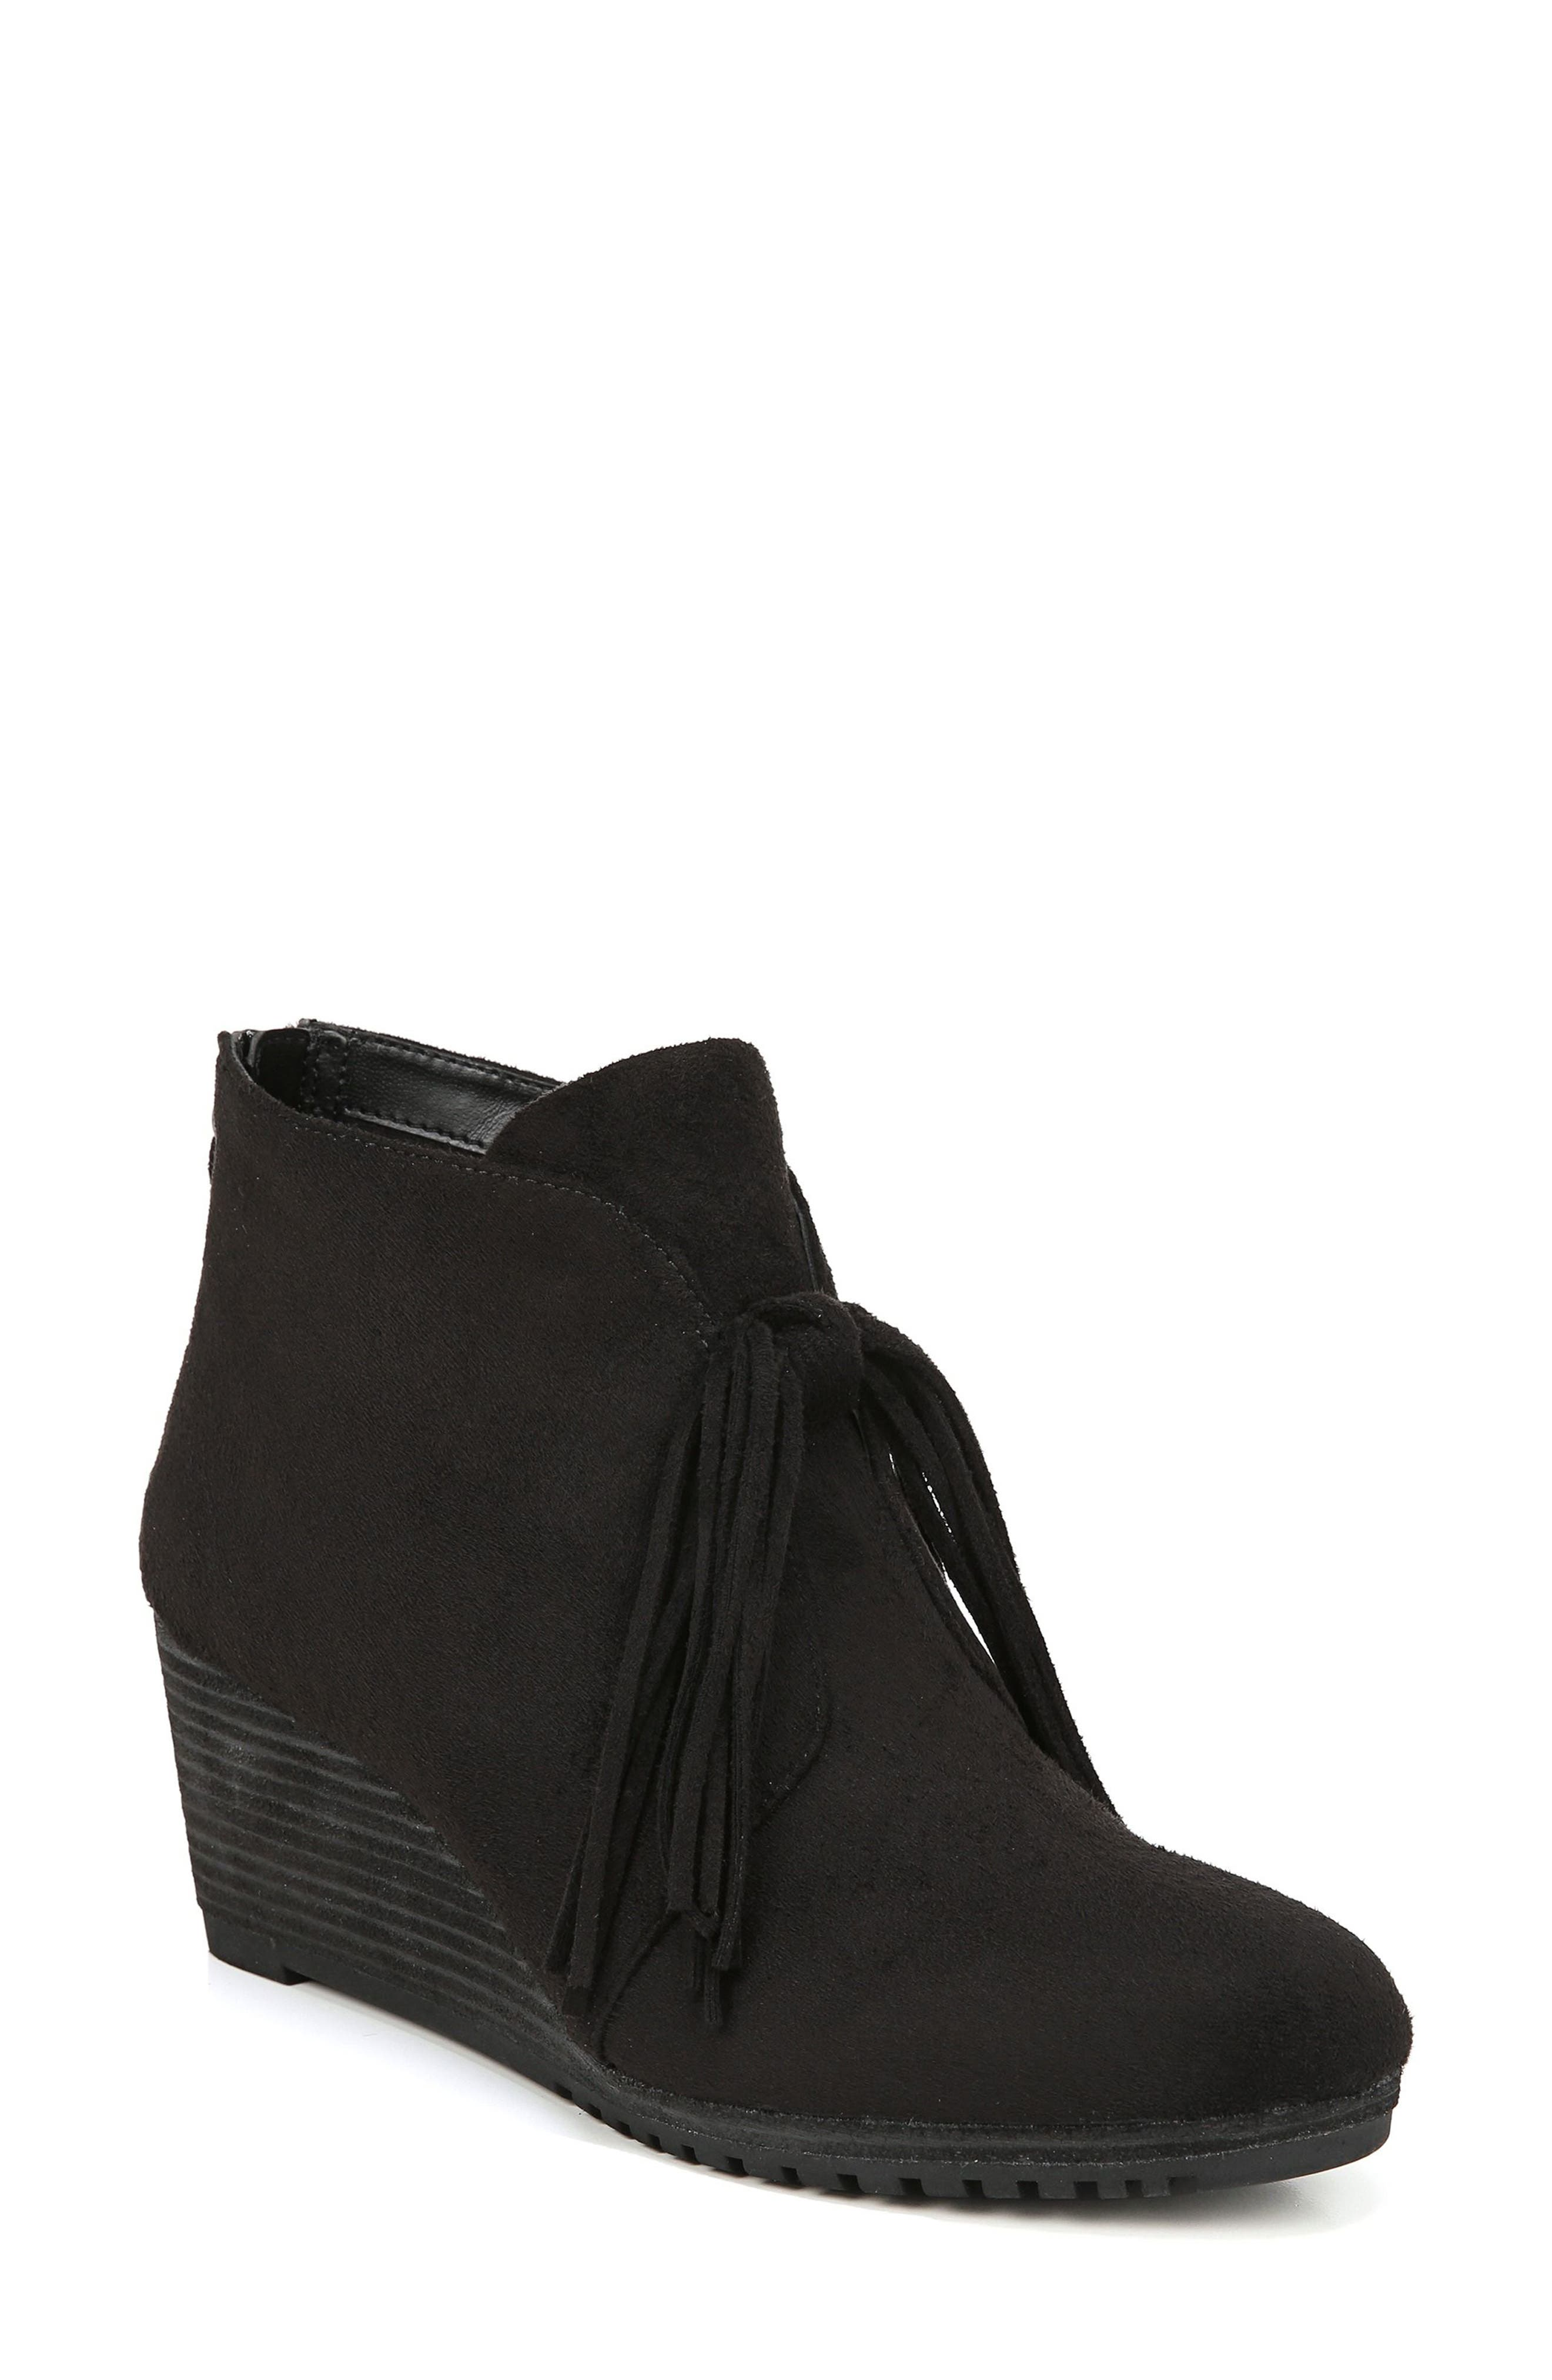 Classify Tassel Wedge Bootie,                             Main thumbnail 1, color,                             BLACK FABRIC